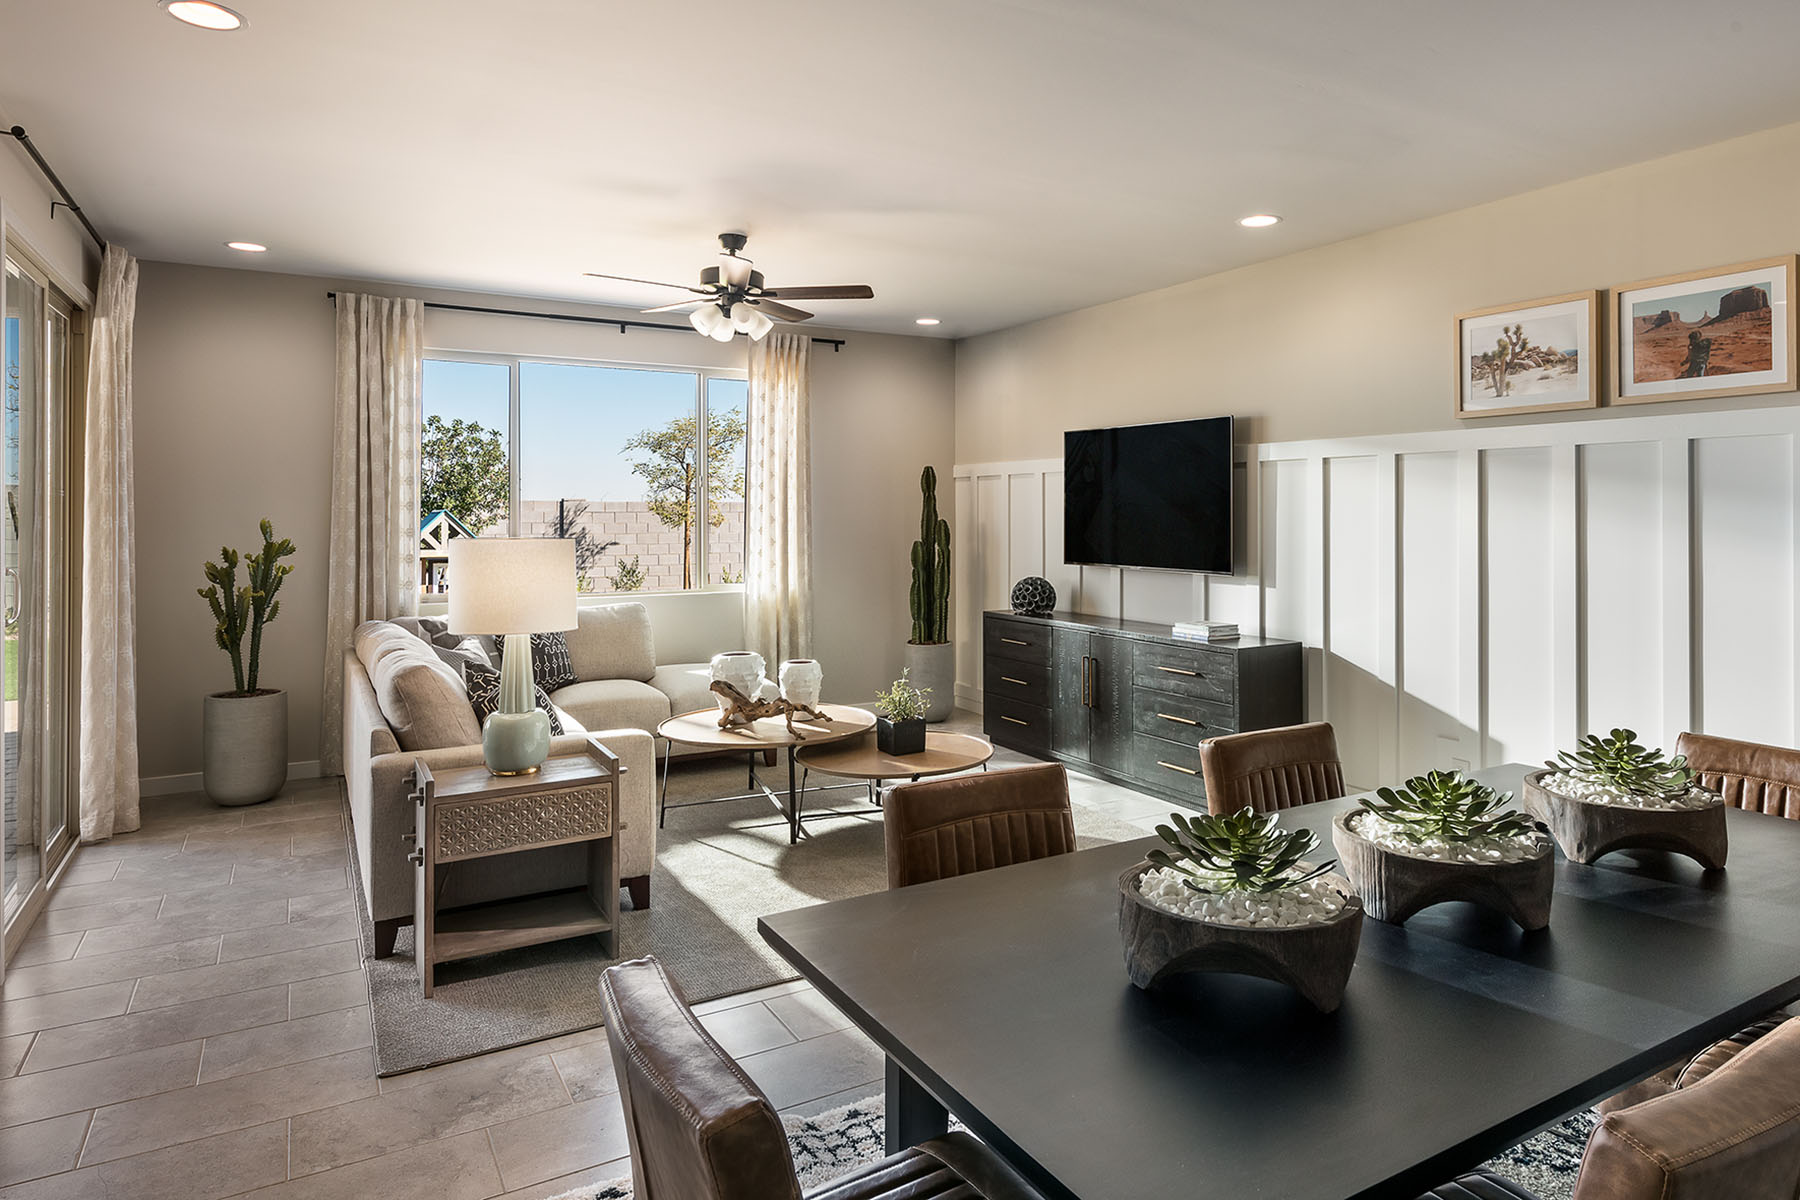 Aries Plan Greatroom at Azure Canyon in Litchfield Park Arizona by Mattamy Homes